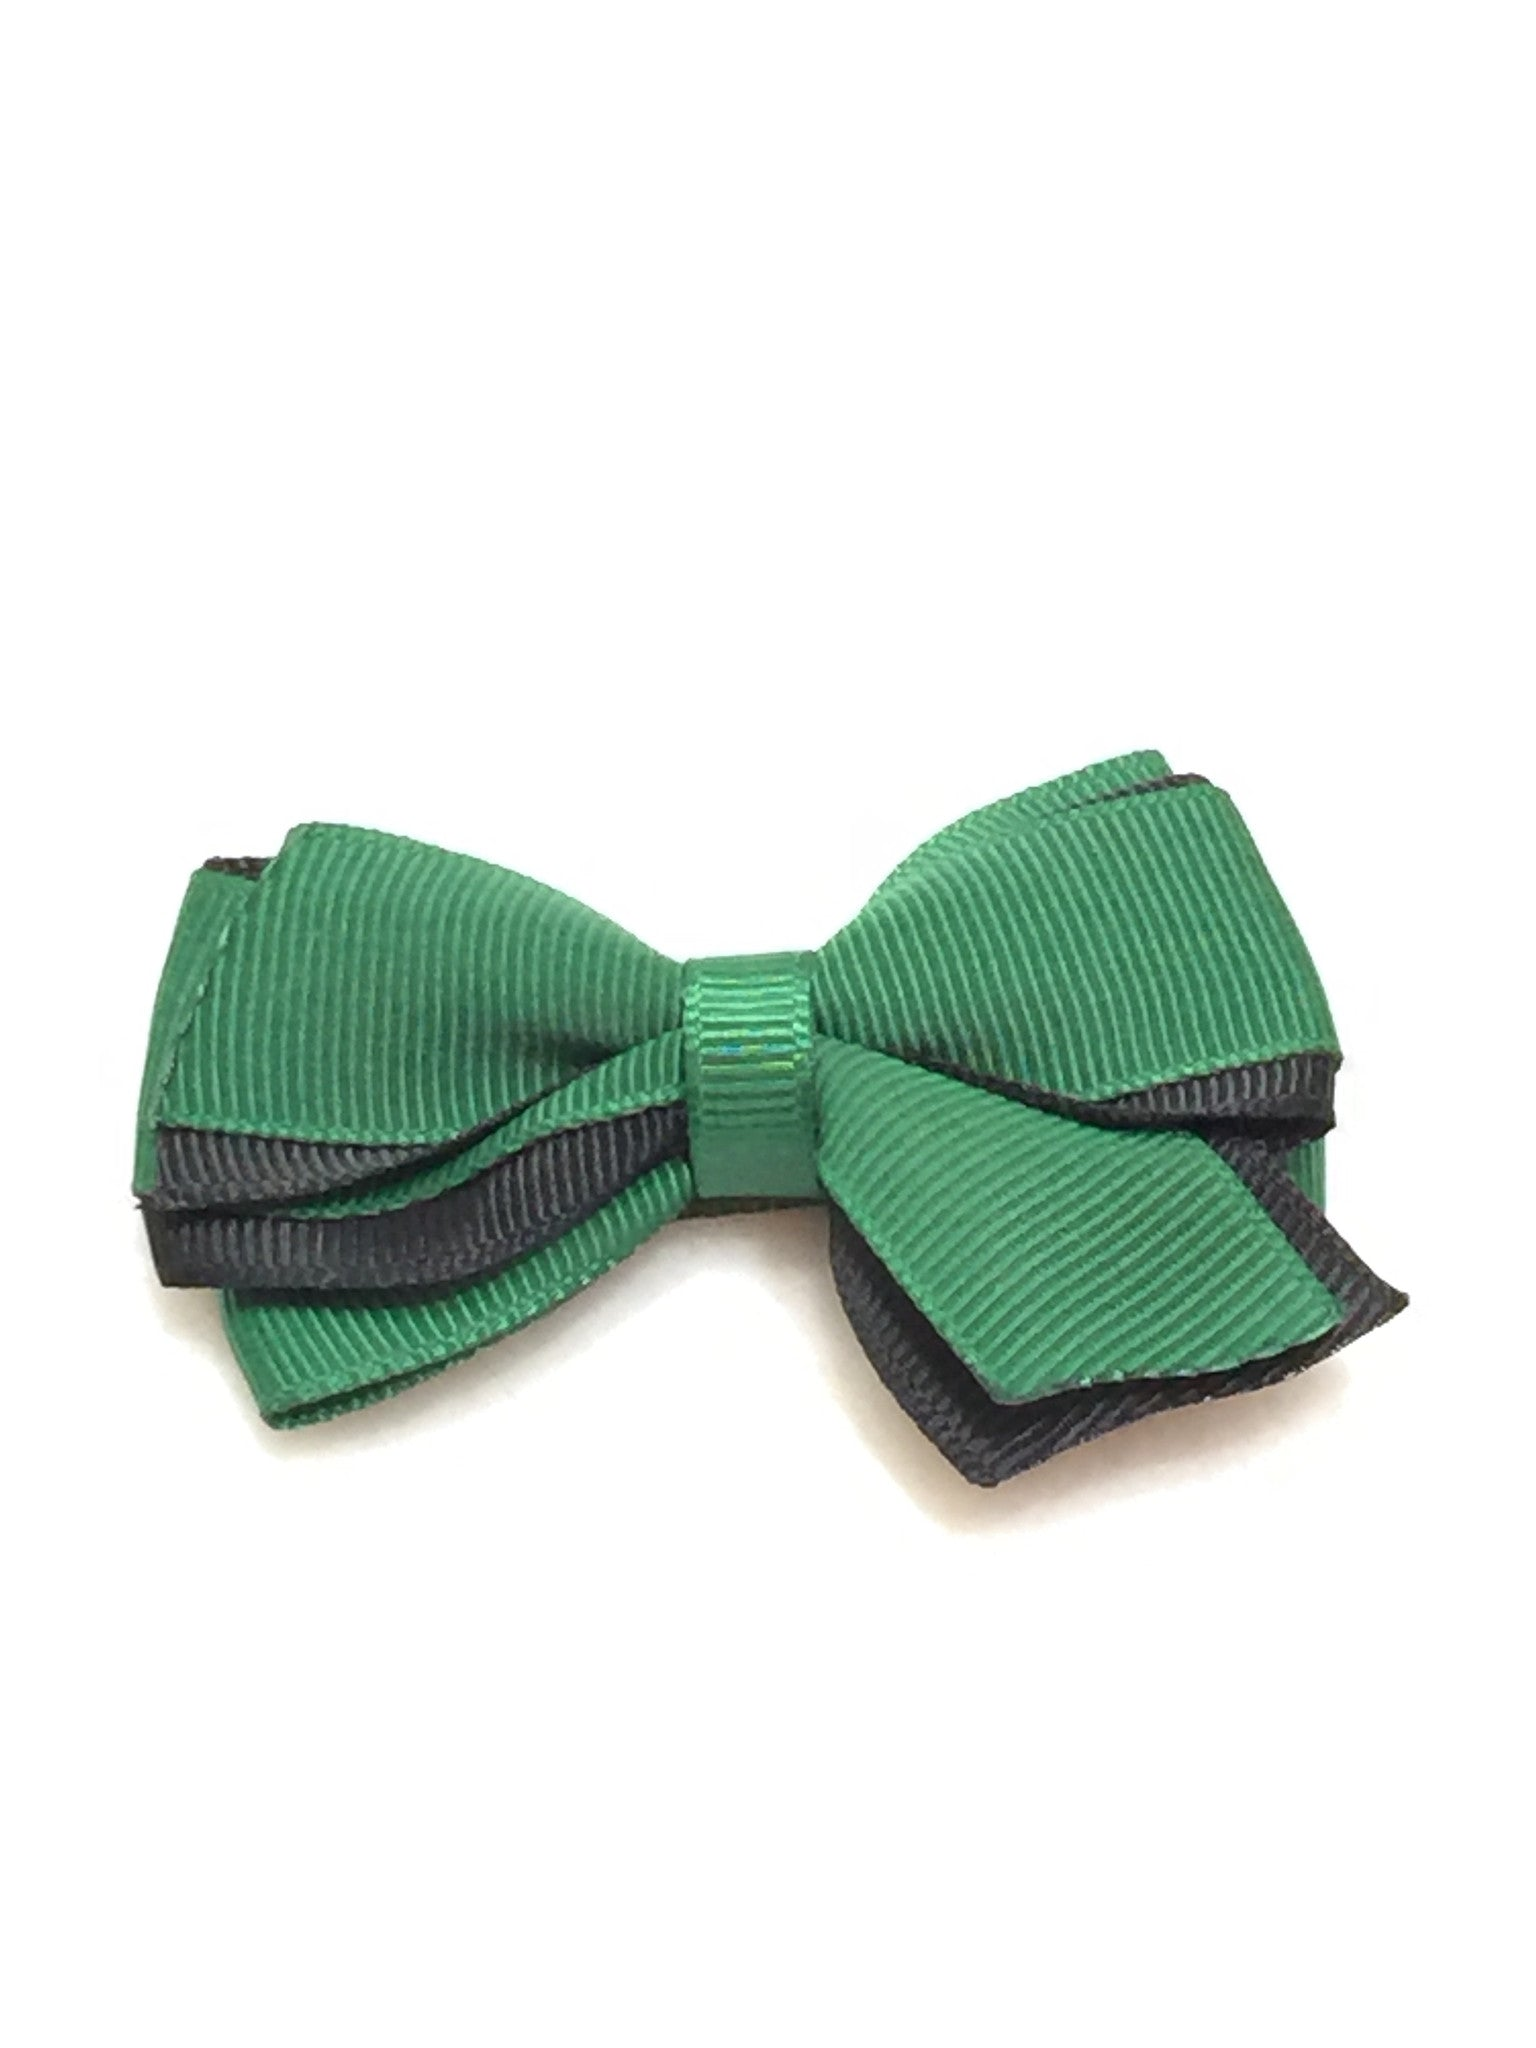 Small Two Tone Hair Bow - Hunter Green - Cutie Bowtutie